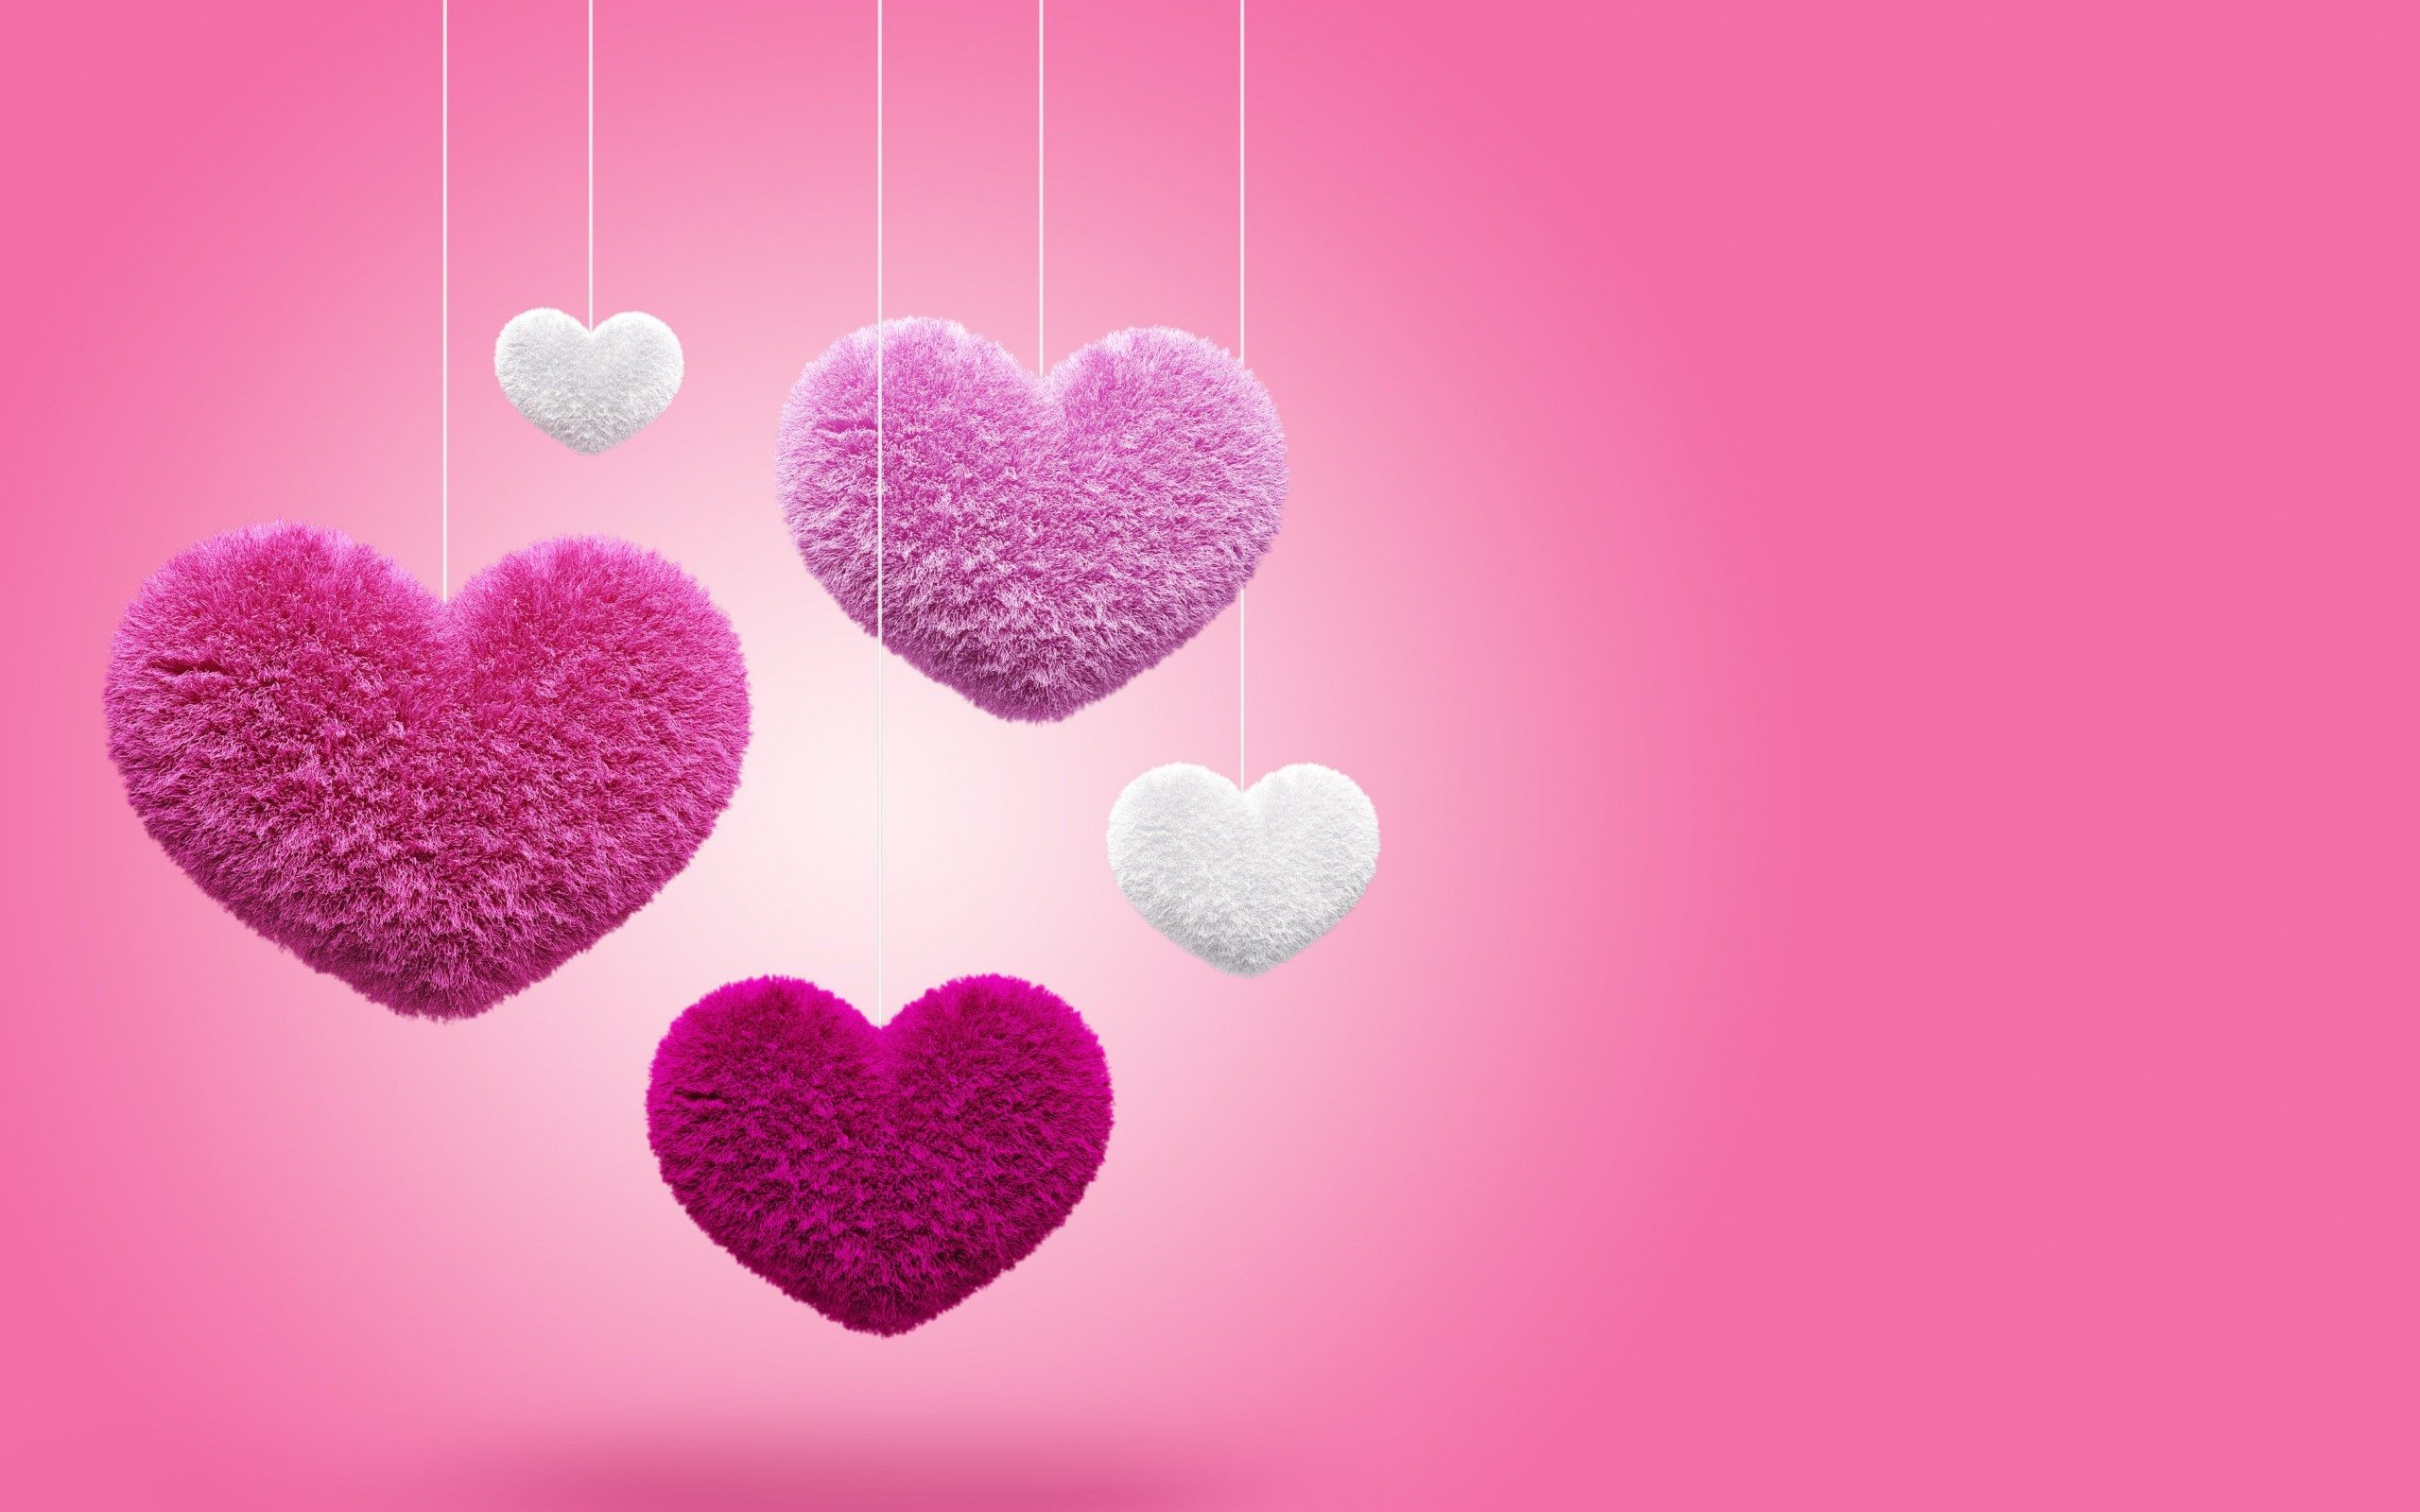 Fluffy Hearts Wallpaper for Desktop 2560x1600